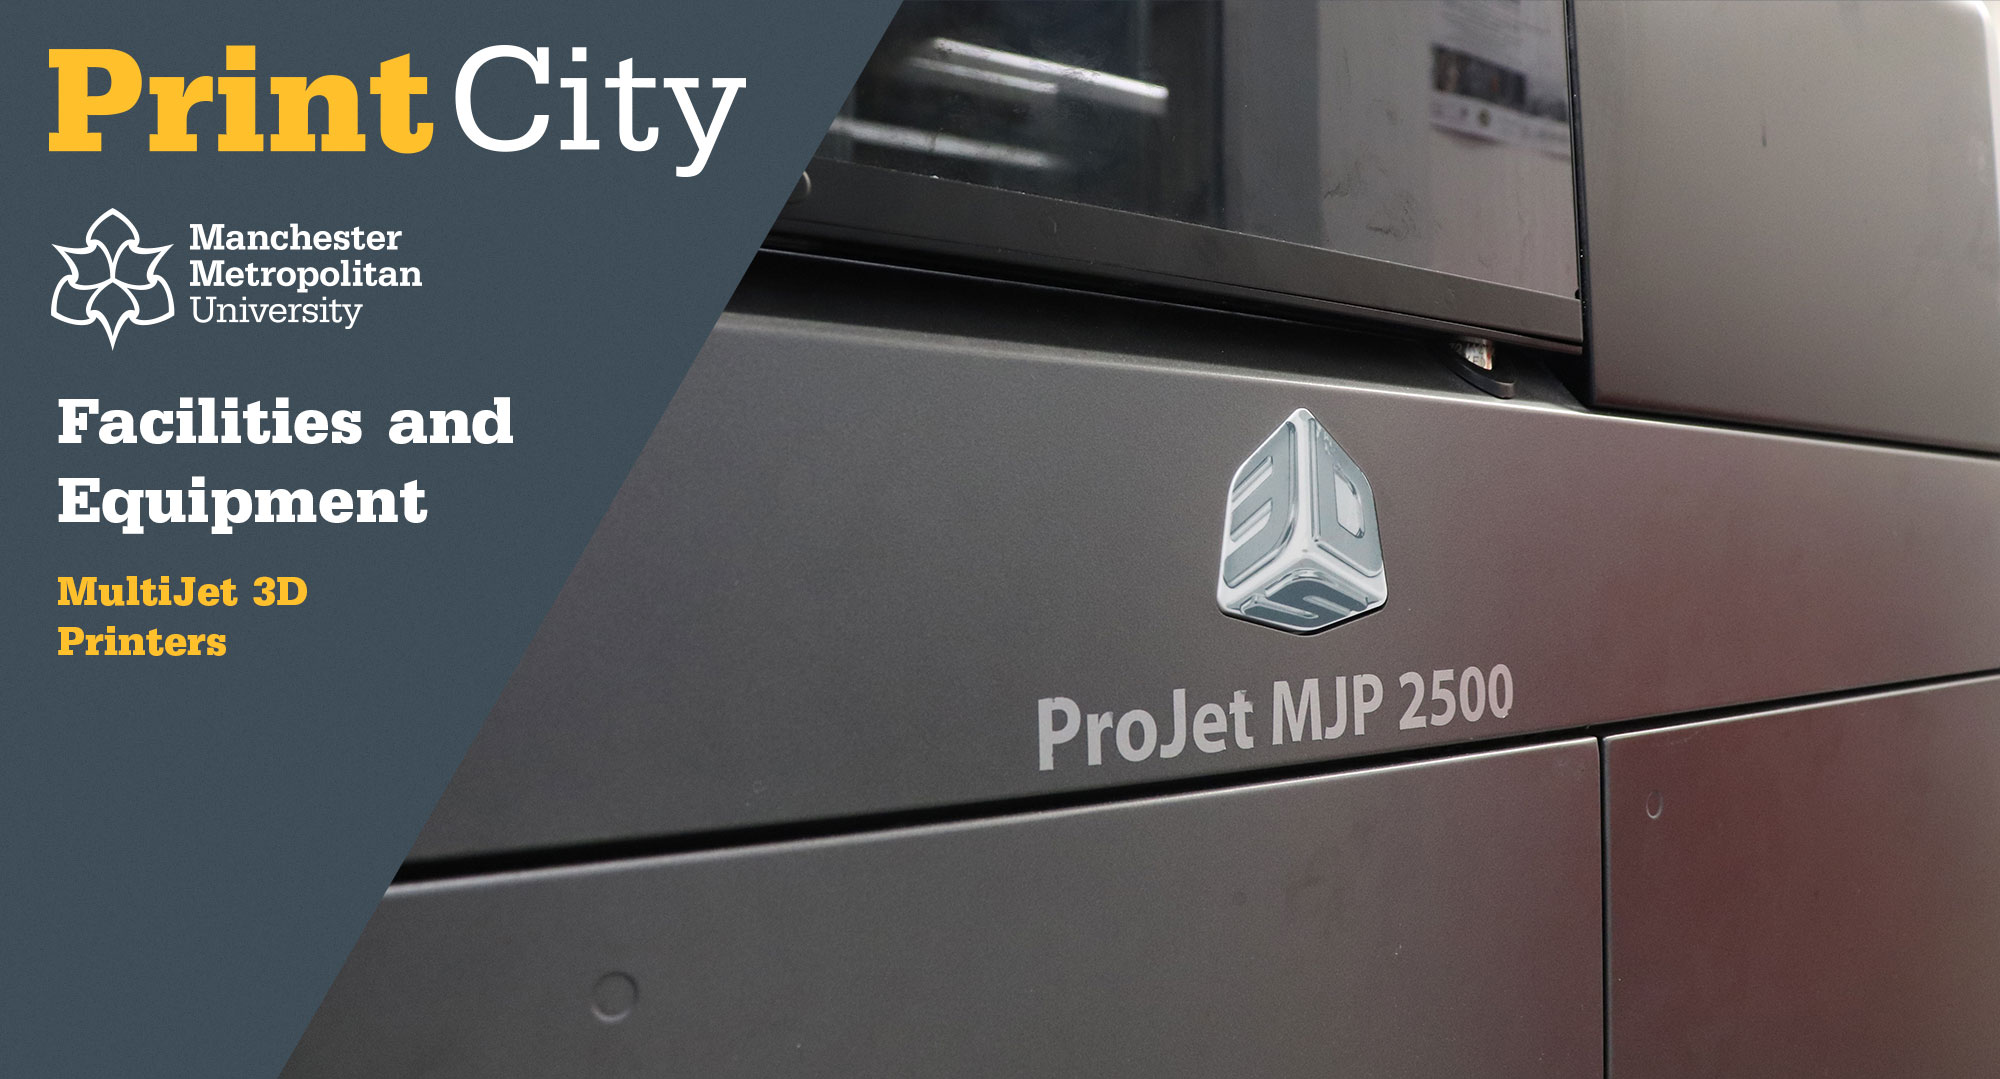 MultiJet 3D Printers - PrintCity - Manchester Metropolitan University - Facilities and Equipment